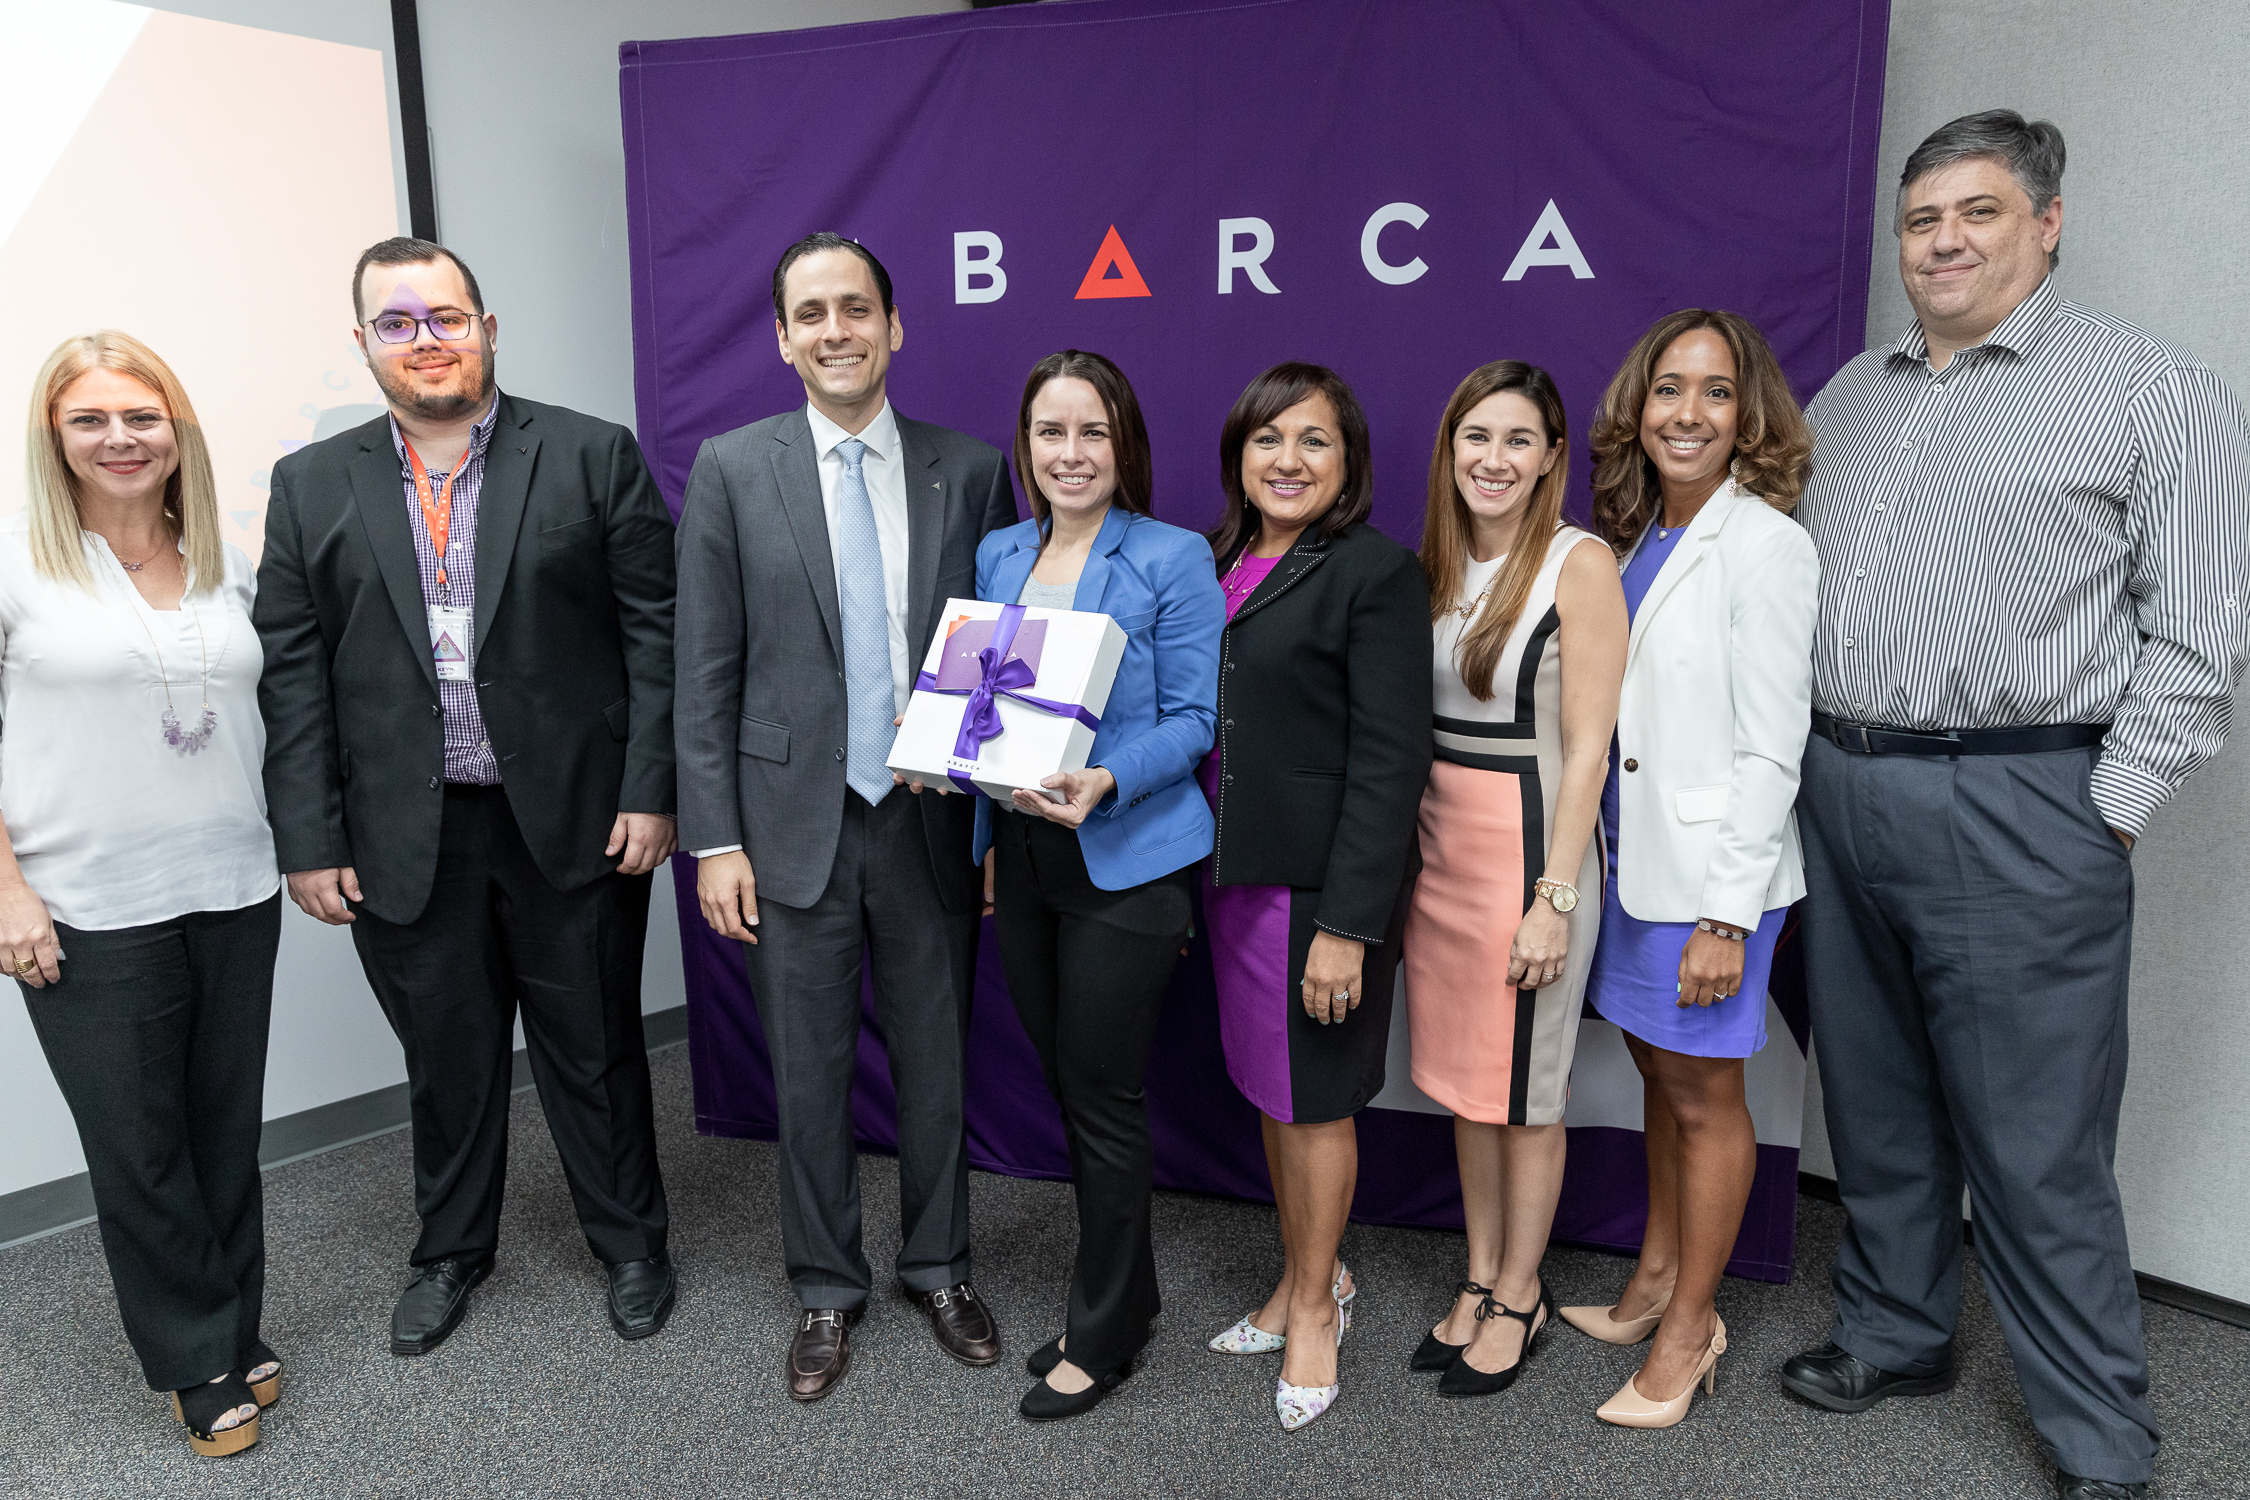 Abarca's President & CEO, Jason Borschow, Nayda Rivera, (President of the #BetterCare Community Committee), stand proudly alongside Dr. Greetchen Díaz-Munoz (Director of Ciencia PR), as well as the Abarcan volunteer team.